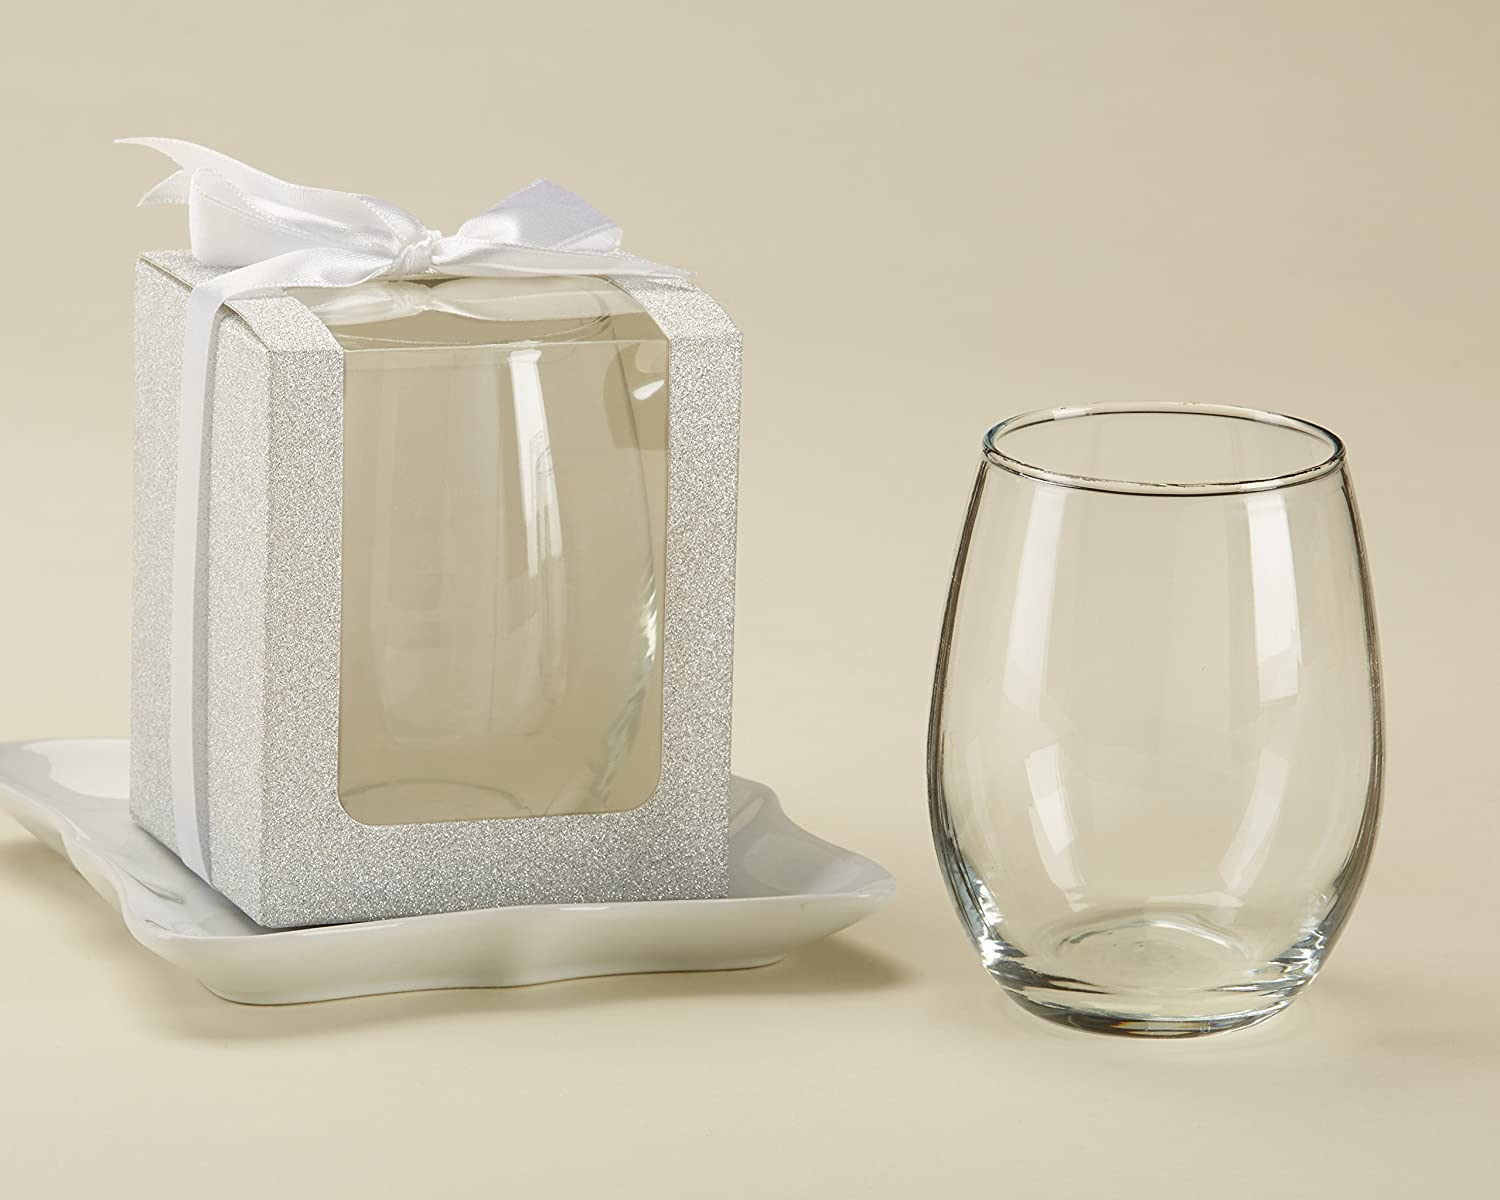 Kate Aspen, Gold Shimmer Display Gift Box, Gift/Party Favor, can hold 9 oz. Stemless Wine Glass (Set of 12) 30009GD-BOX